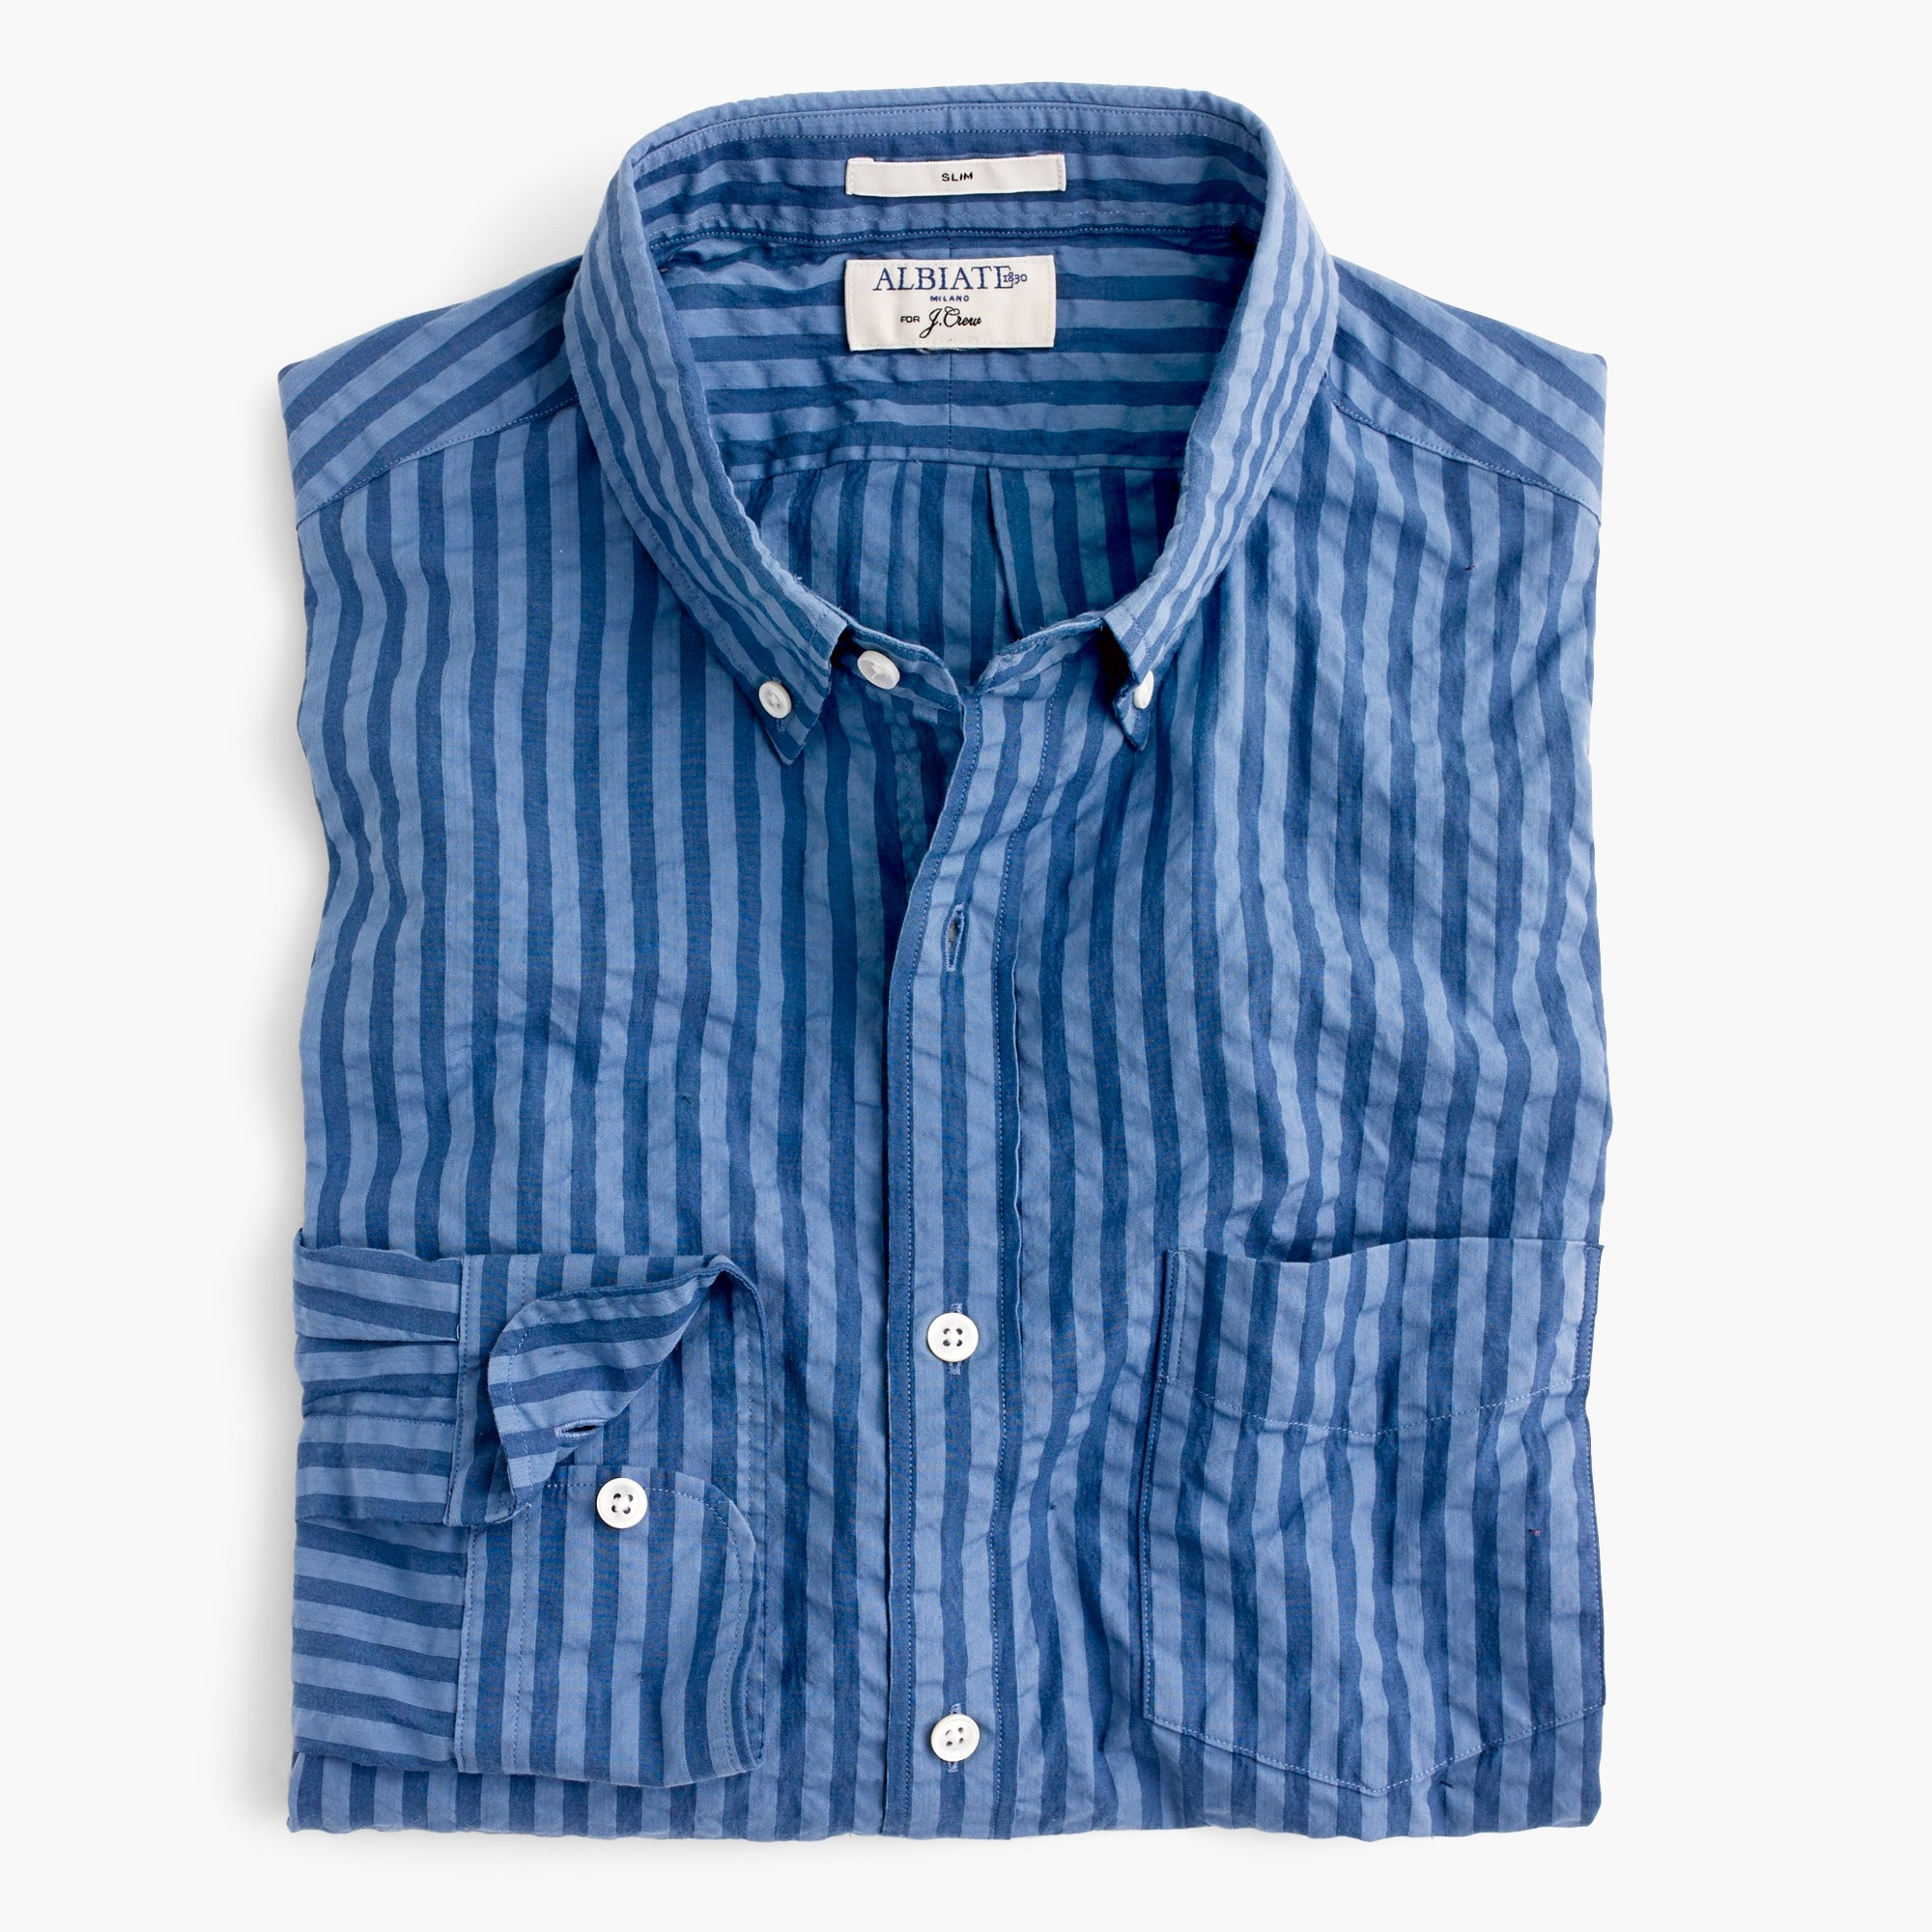 slim albiate 1830 for j.crew washed shirt in indigo seersucker : men slim shirt shop